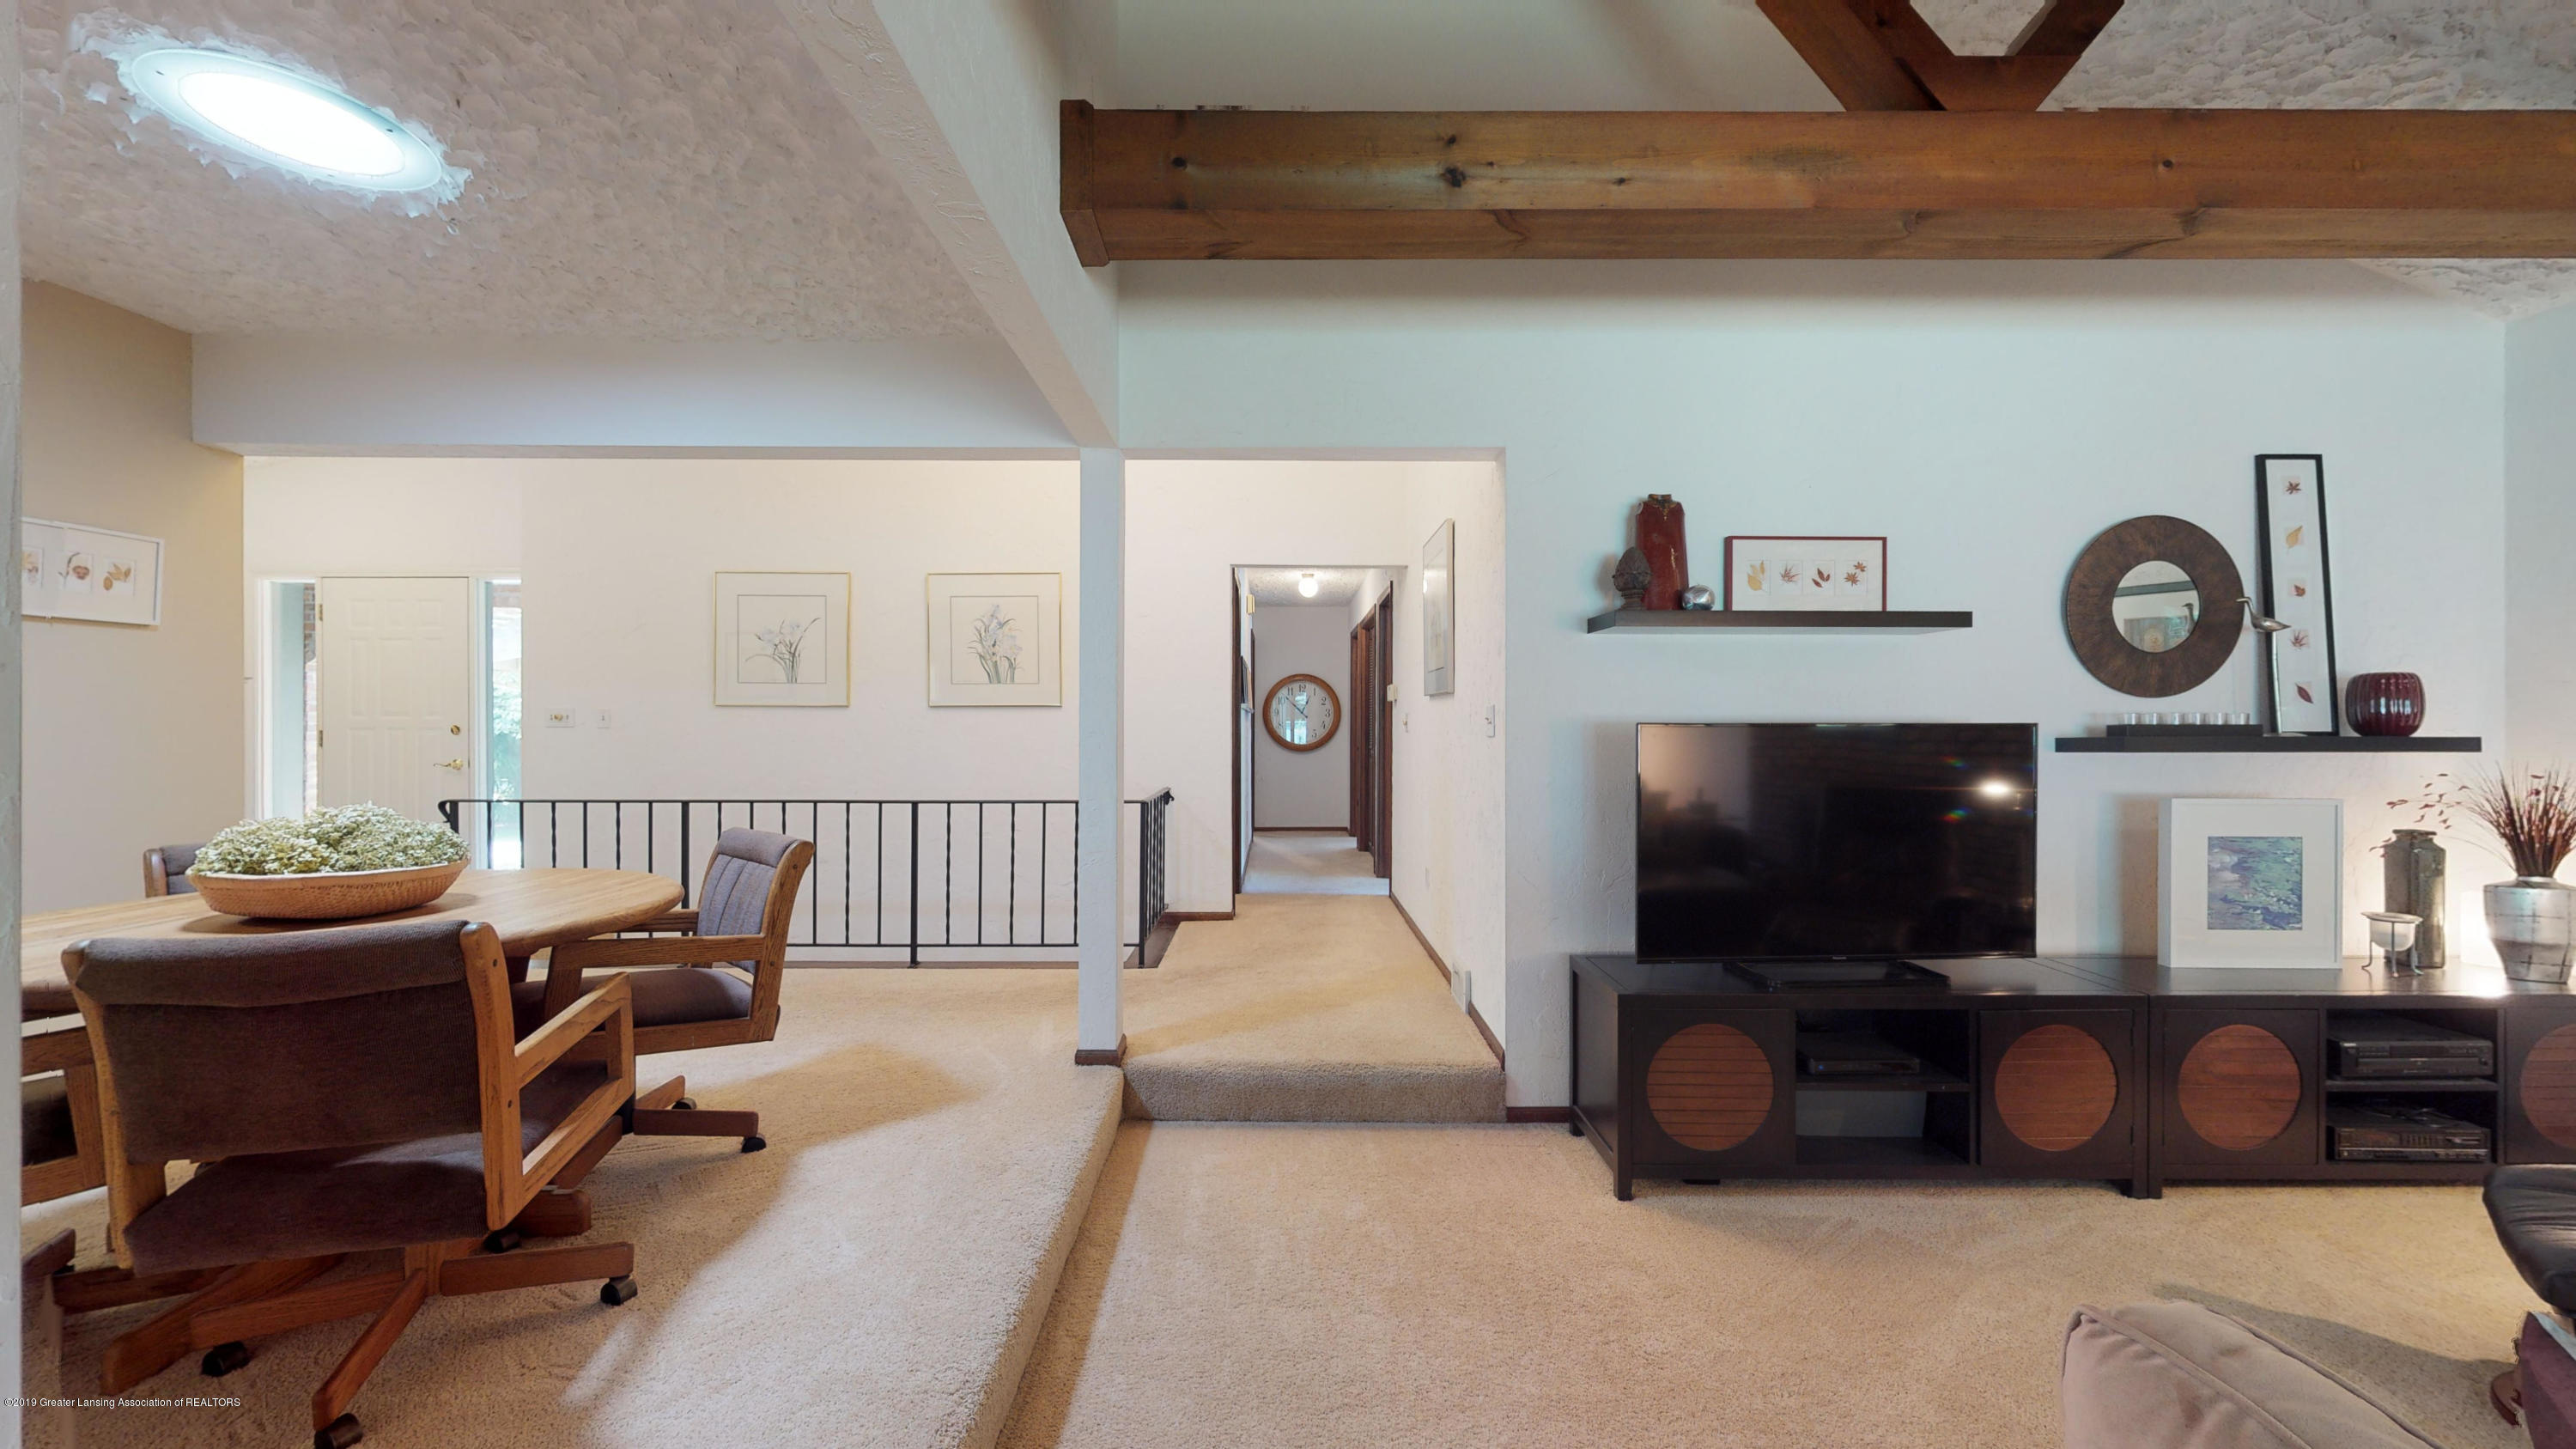 3708 David Ln - 3708-David-Lane-Living-Room_100214 - 13